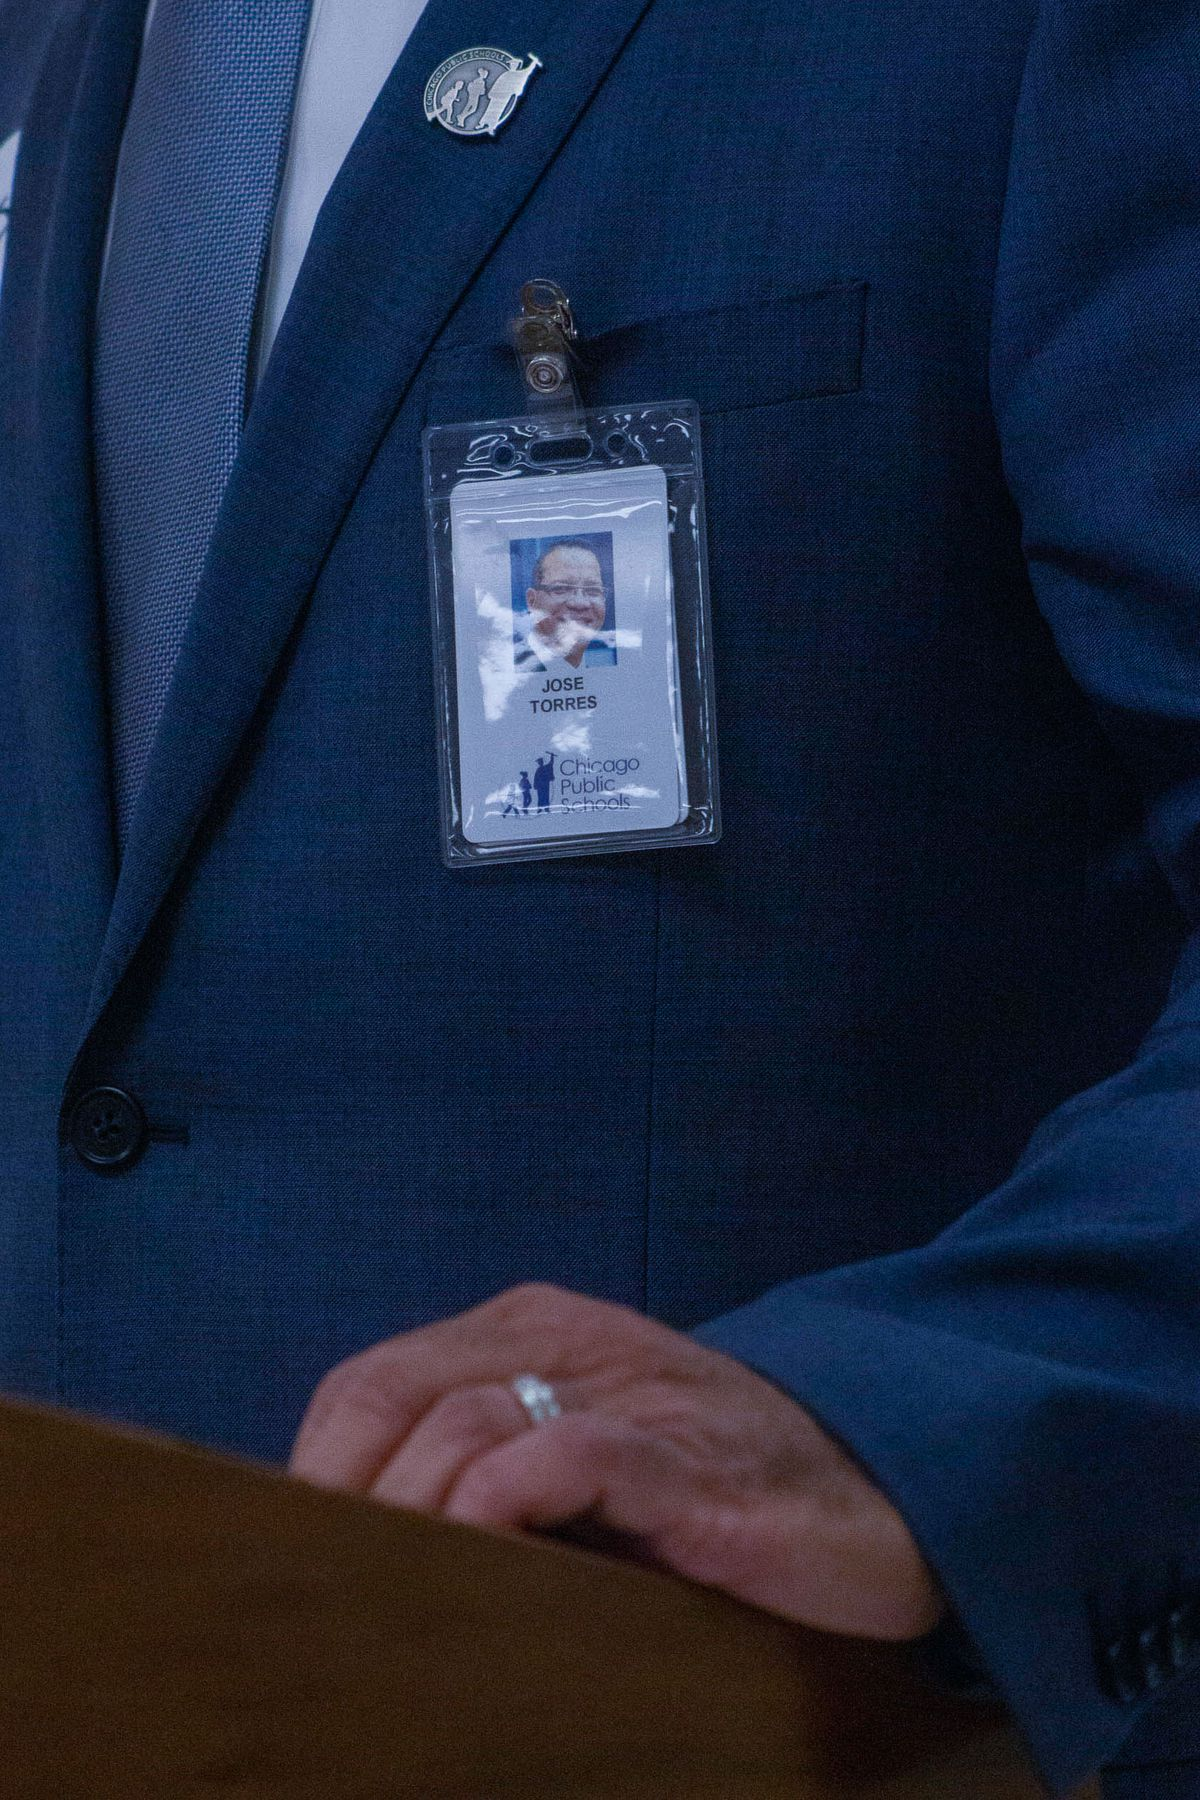 Interim CEO Jose Torres' name badge hangs on the pocket of his suit jacket as he makes a speech during a press conference.